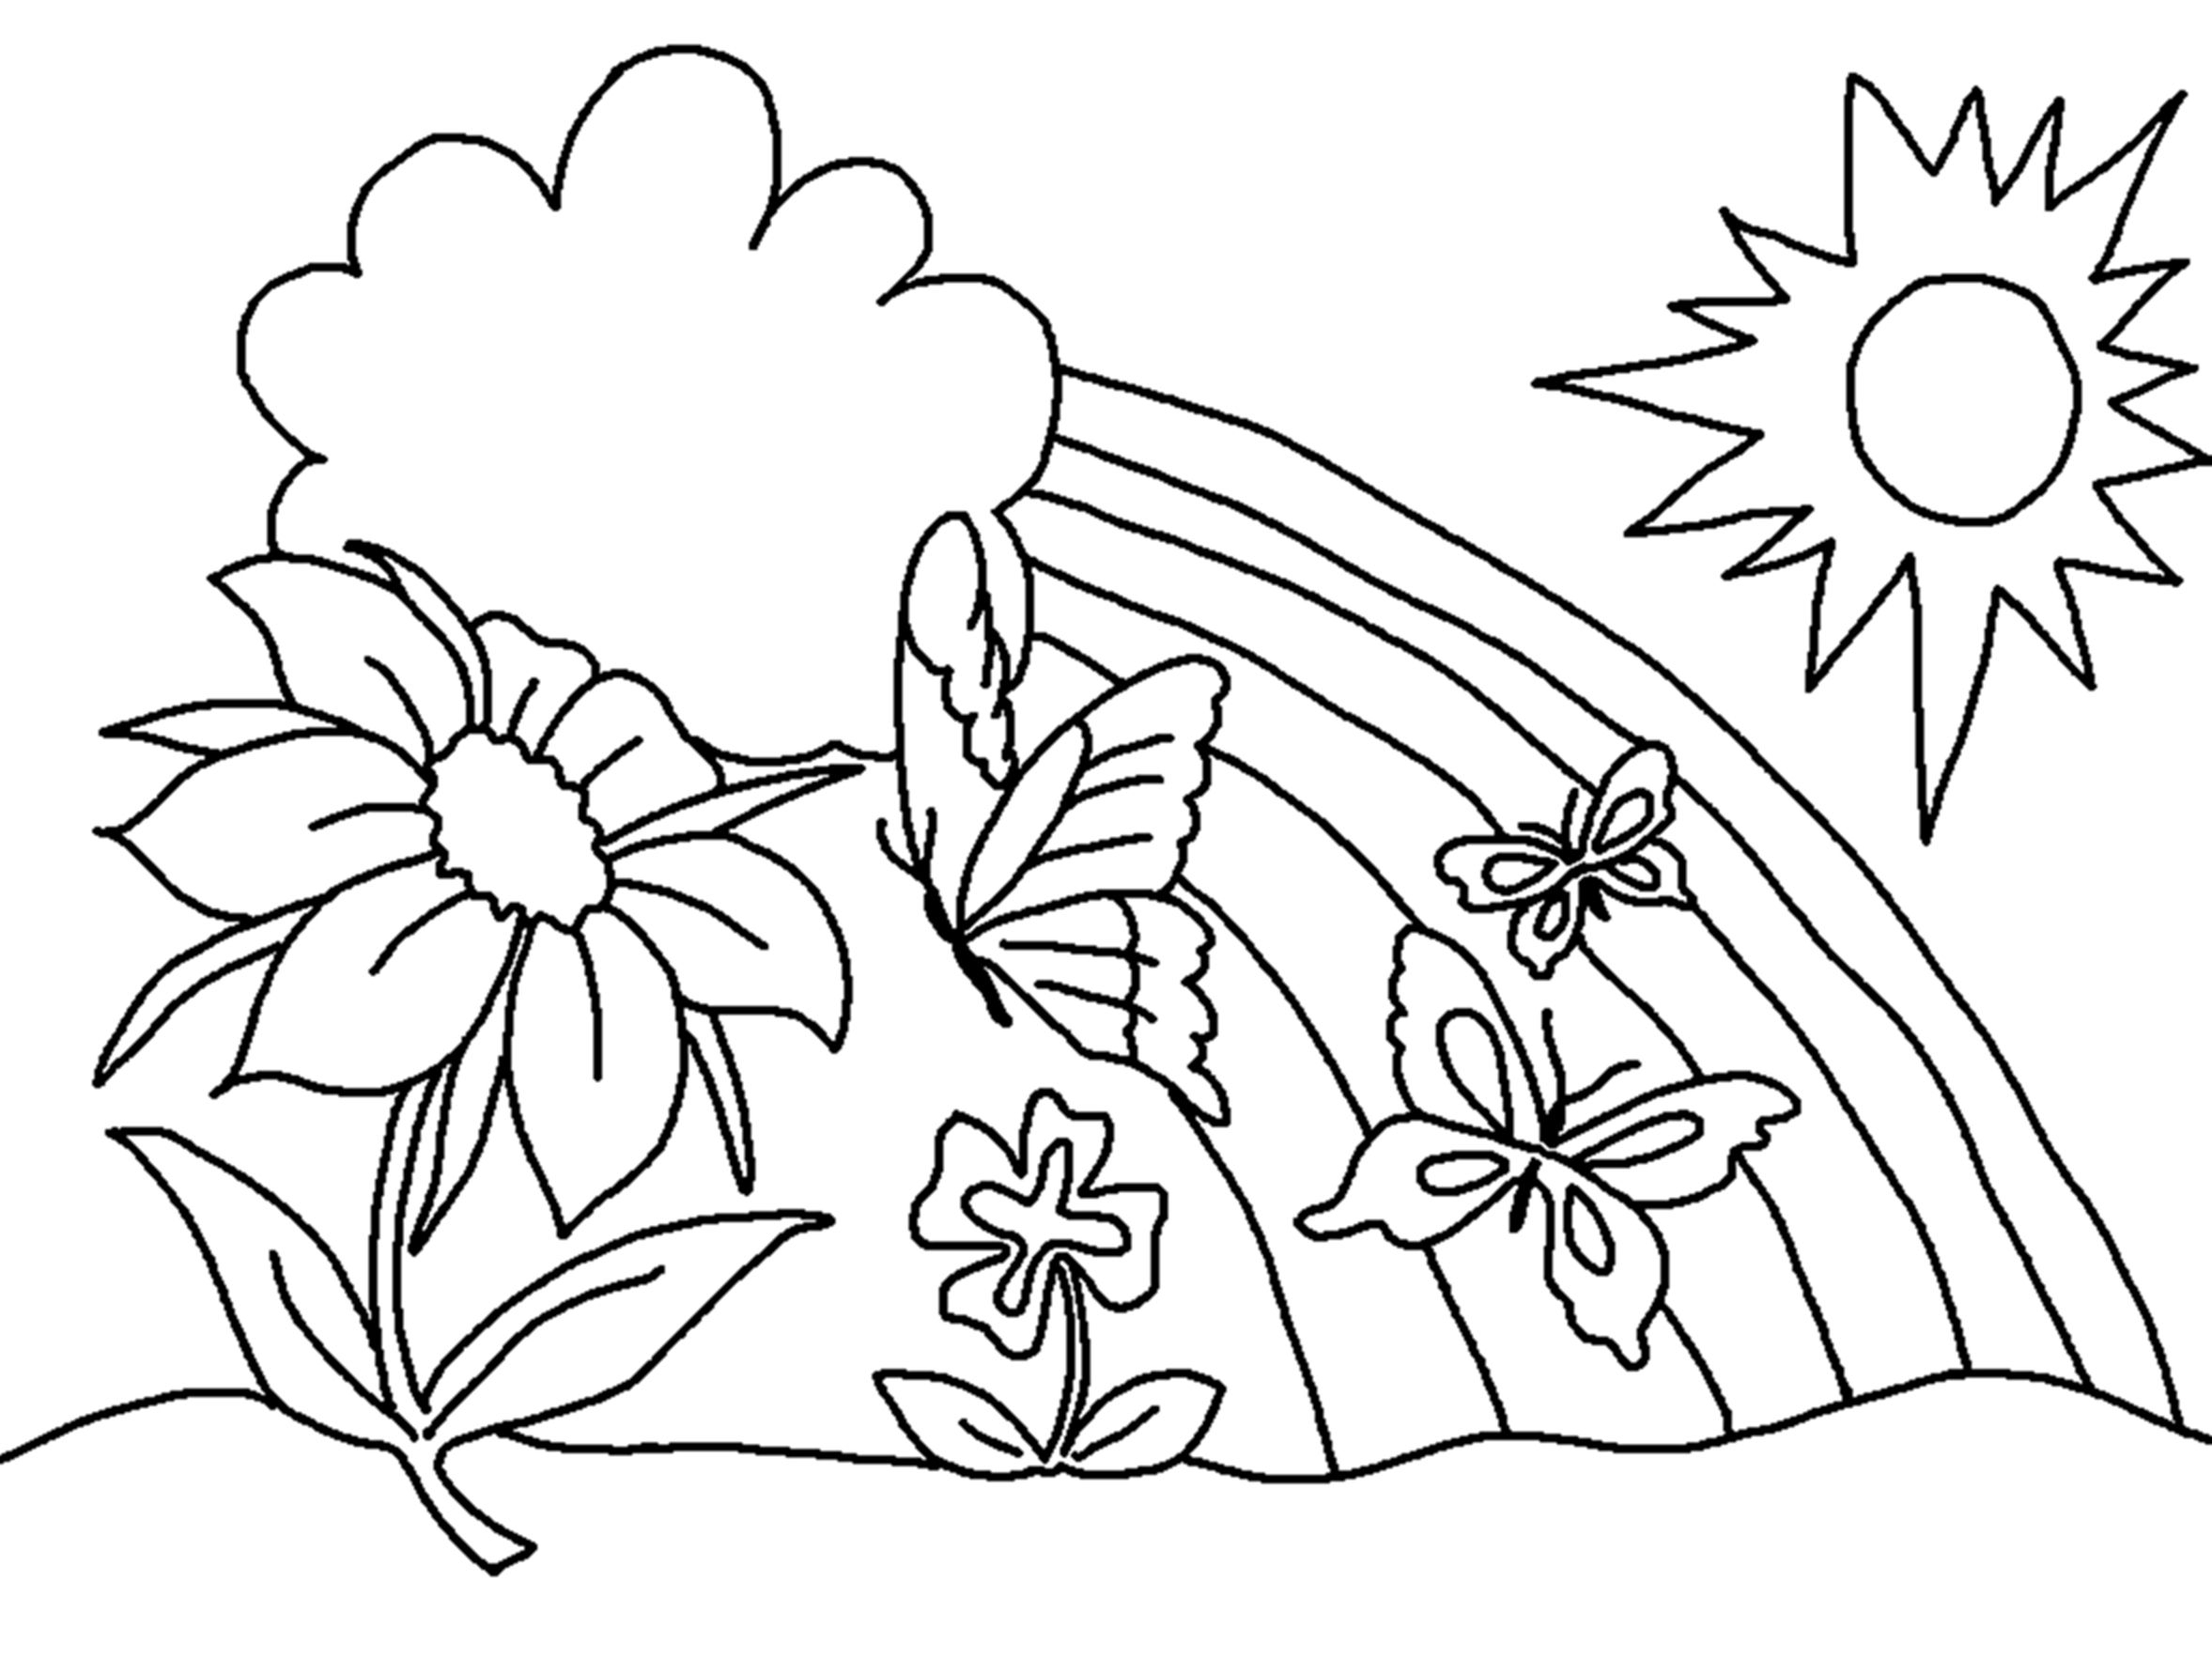 2355x1766 Reduced Springtime Pictures To Color Coloring Pages Download